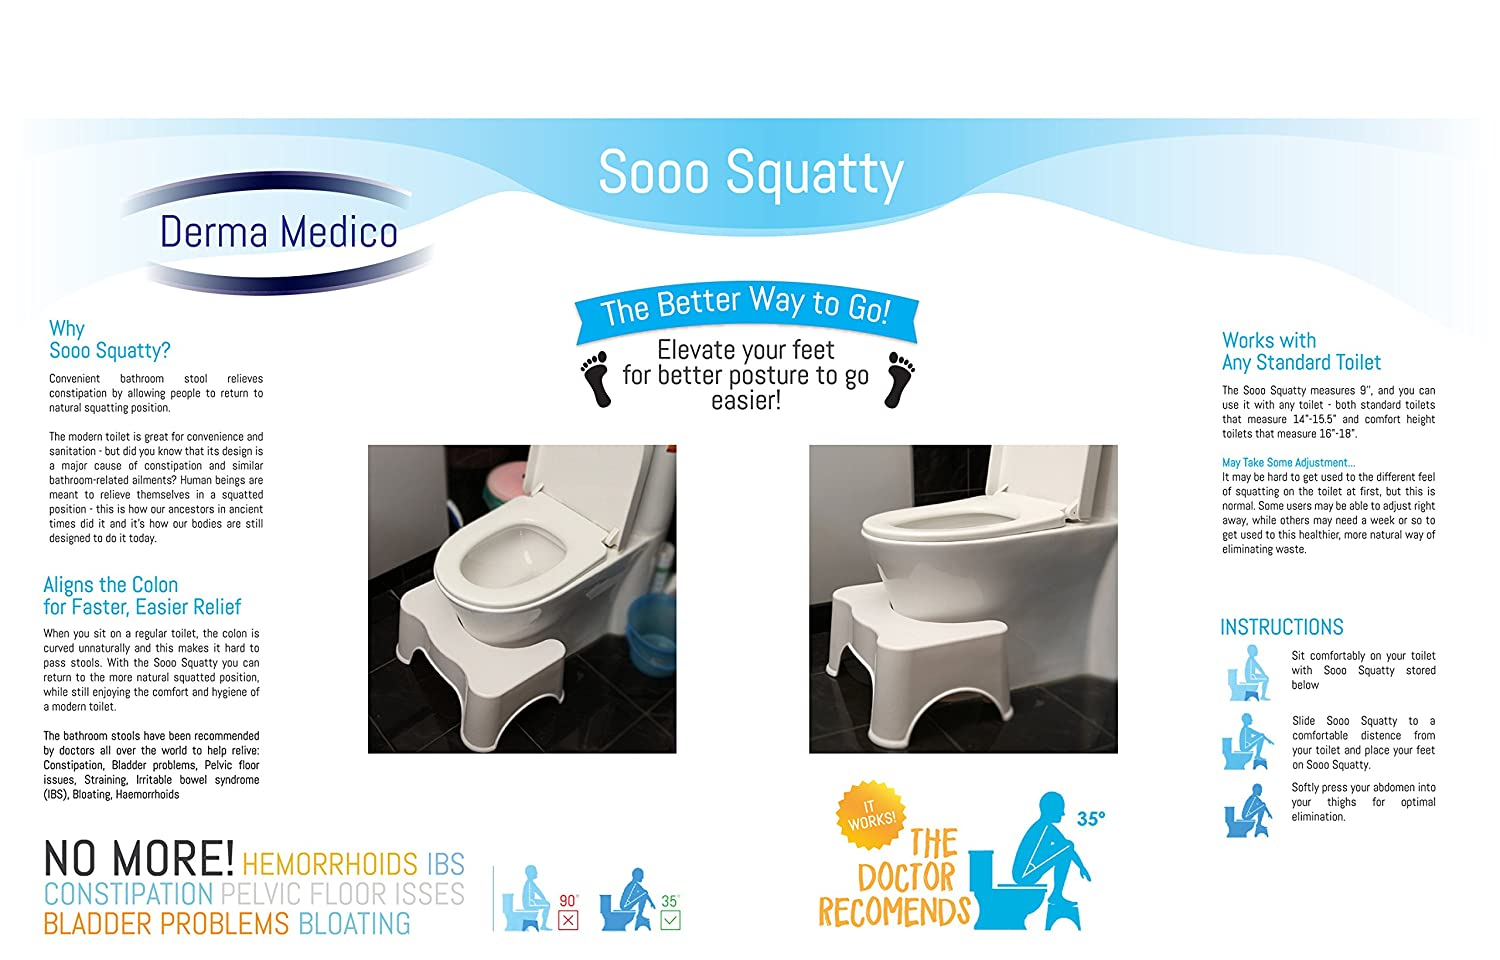 How to go to bathroom when constipated - Squatting Toilet Stool 9 Inch By Derma Medico Non Slip Bathroom Step Up Stool Relieves Constipation Bloating Aligns The Colon For Faster